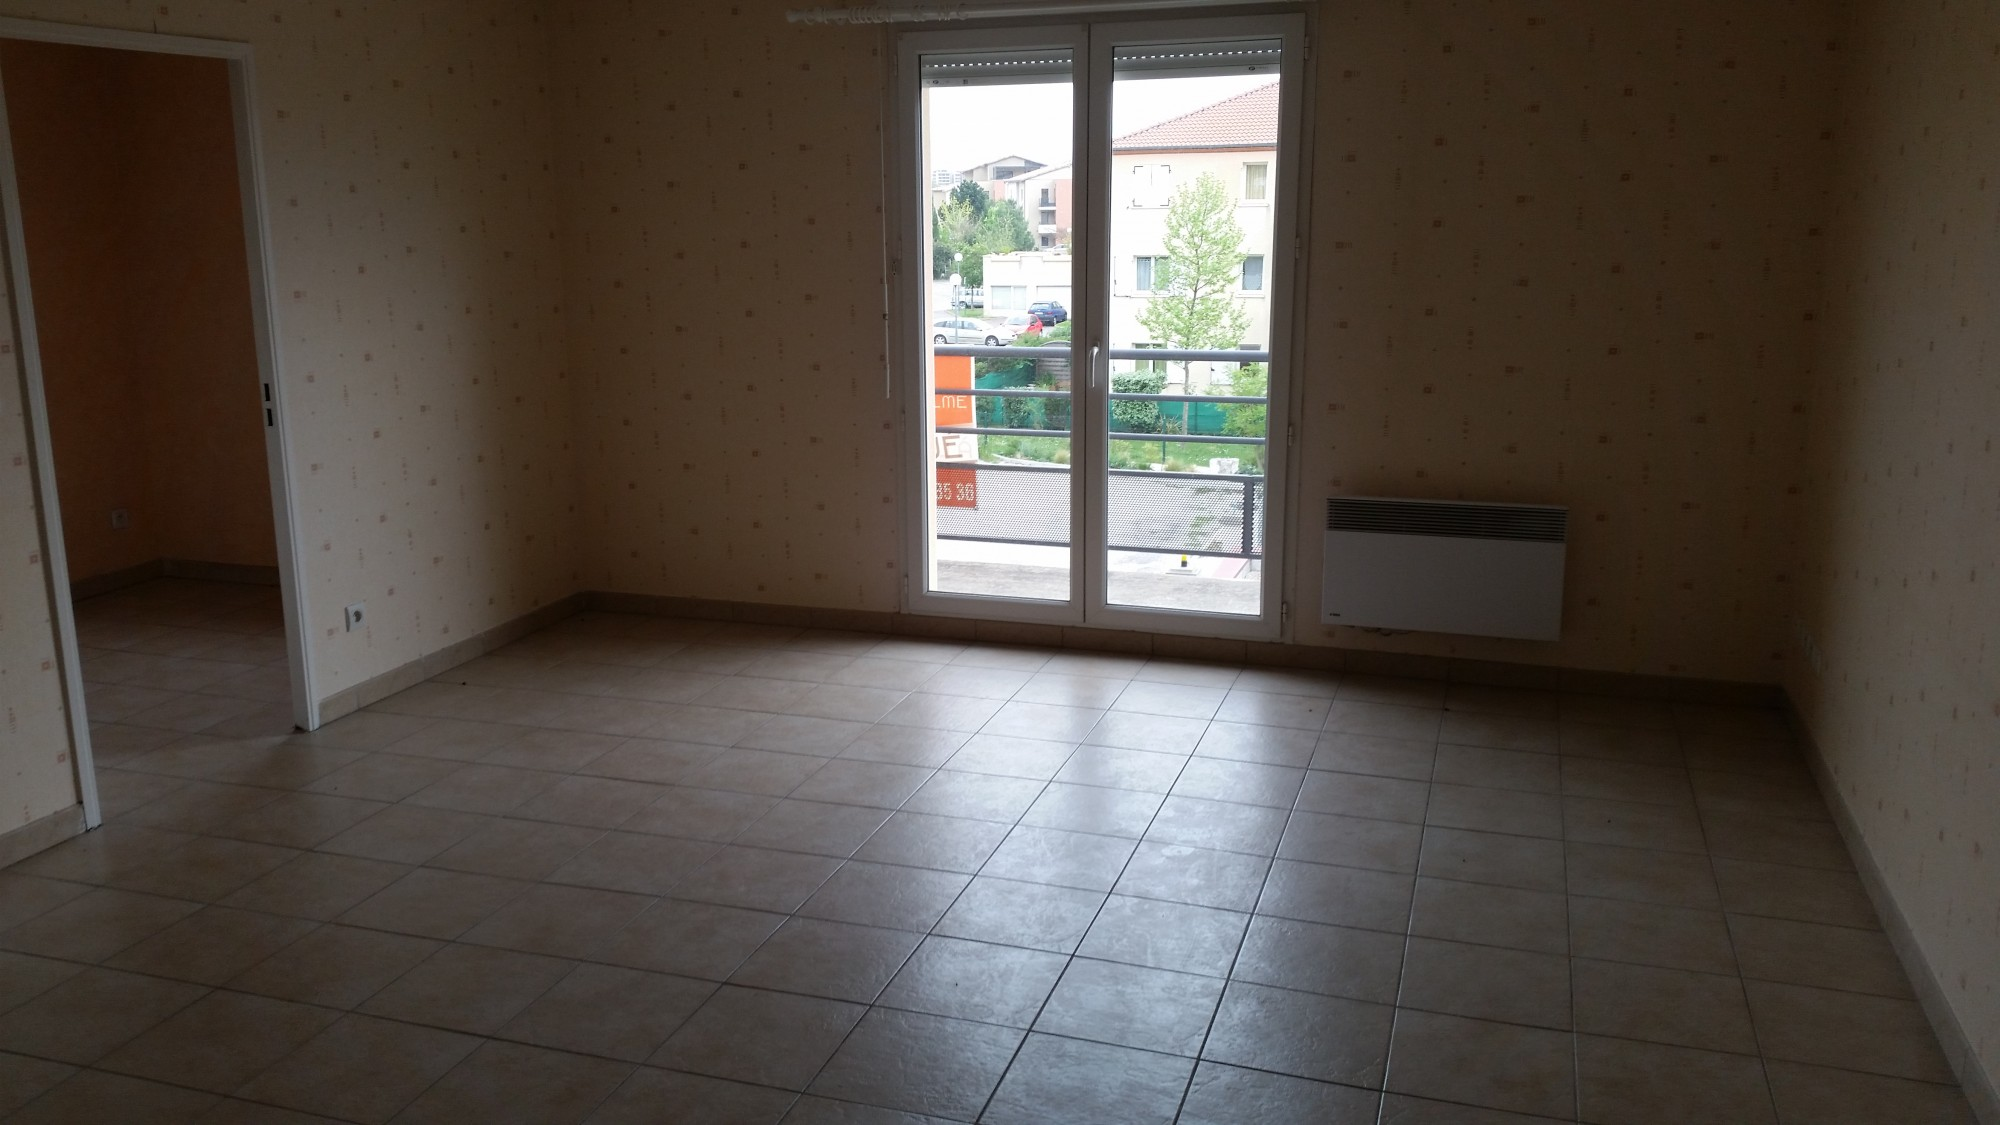 Location guilherand granges t3 r cent avec balcon et parkings location agence immobili re - Appartement guilherand granges ...